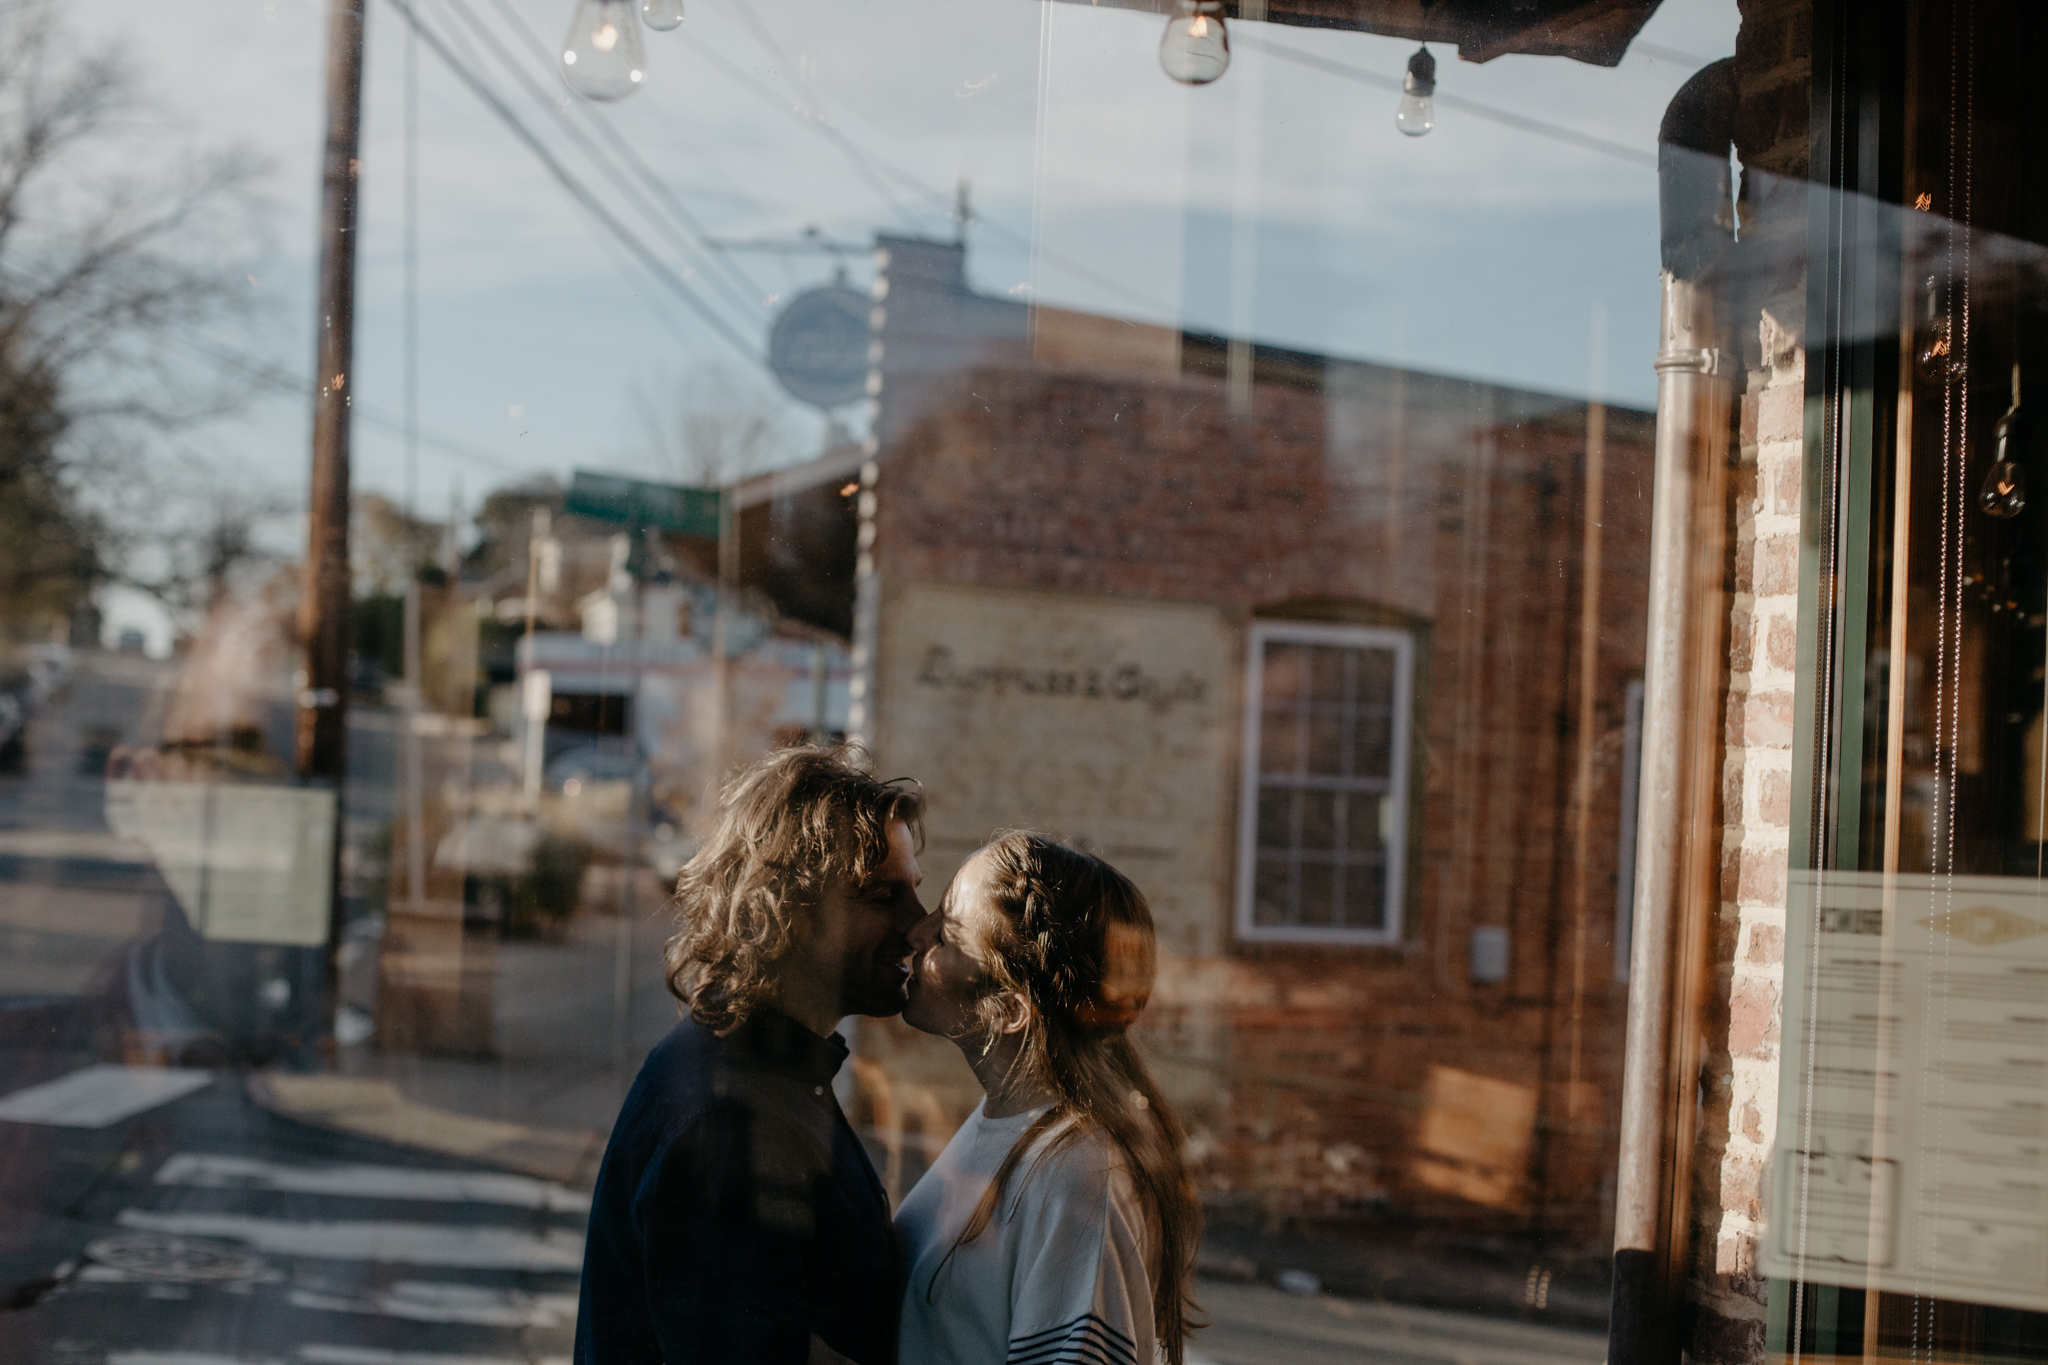 181116_Megan-Andrew-Engagement_035.jpg